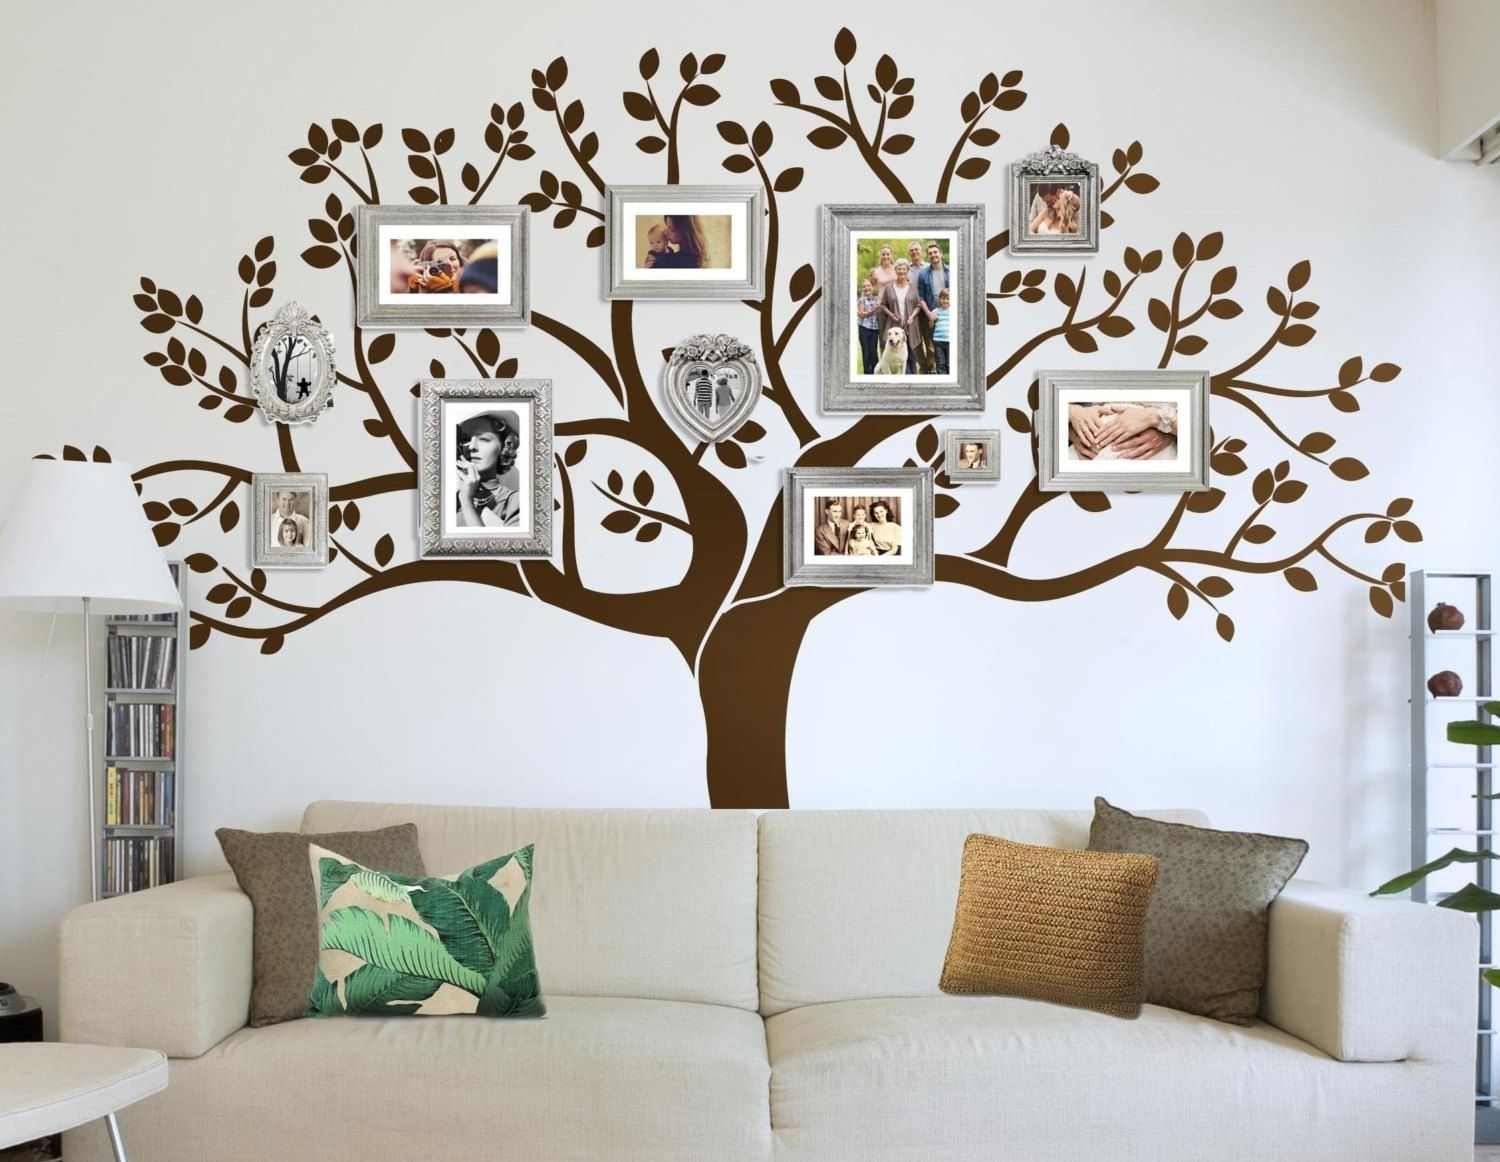 Unique Family Tree Wall Art Decal Collection | Wall Decoration 2018 Inside 2017 Family Tree Wall Art (View 11 of 15)